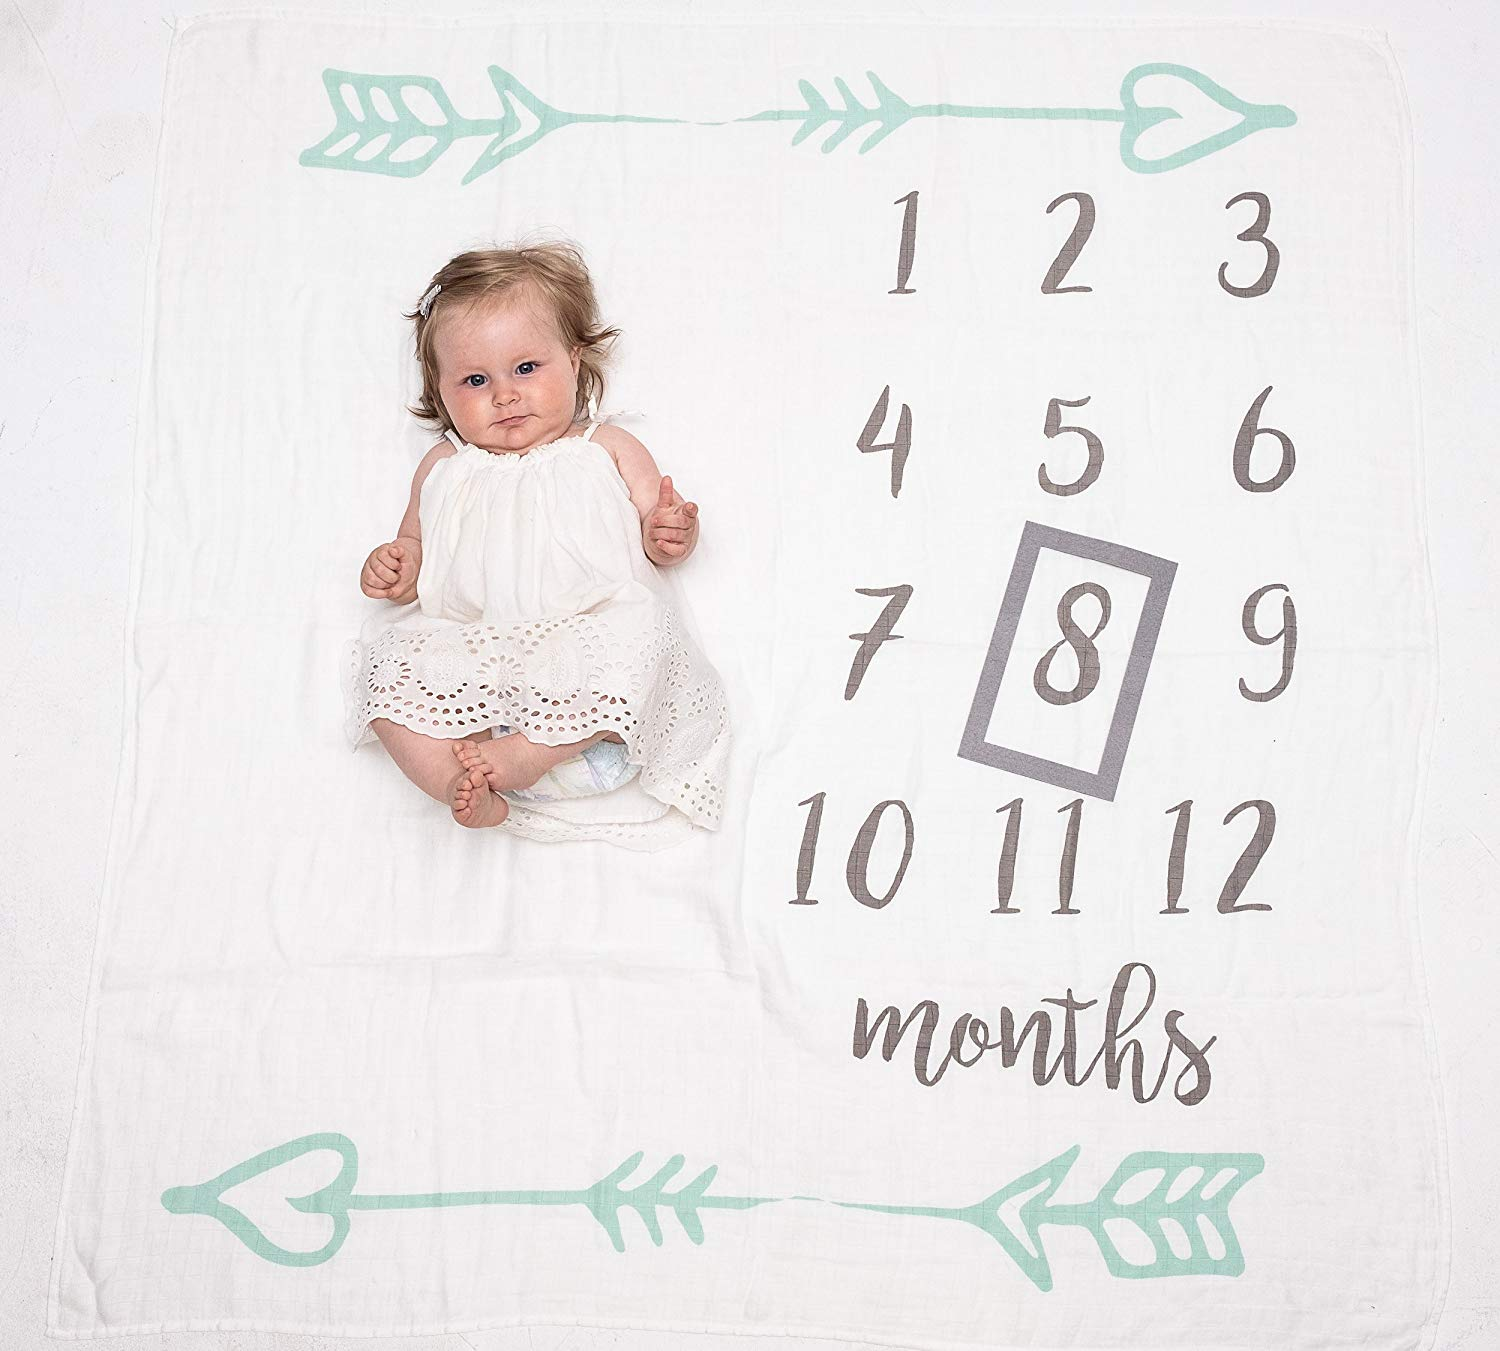 Clara's Keep Baby Milestone Blanket | Muslin Swaddle Blanket for Monthly Photos | Baby Girl | Baby Boy | Gender Neutral | Bonus - Grey Frame Included